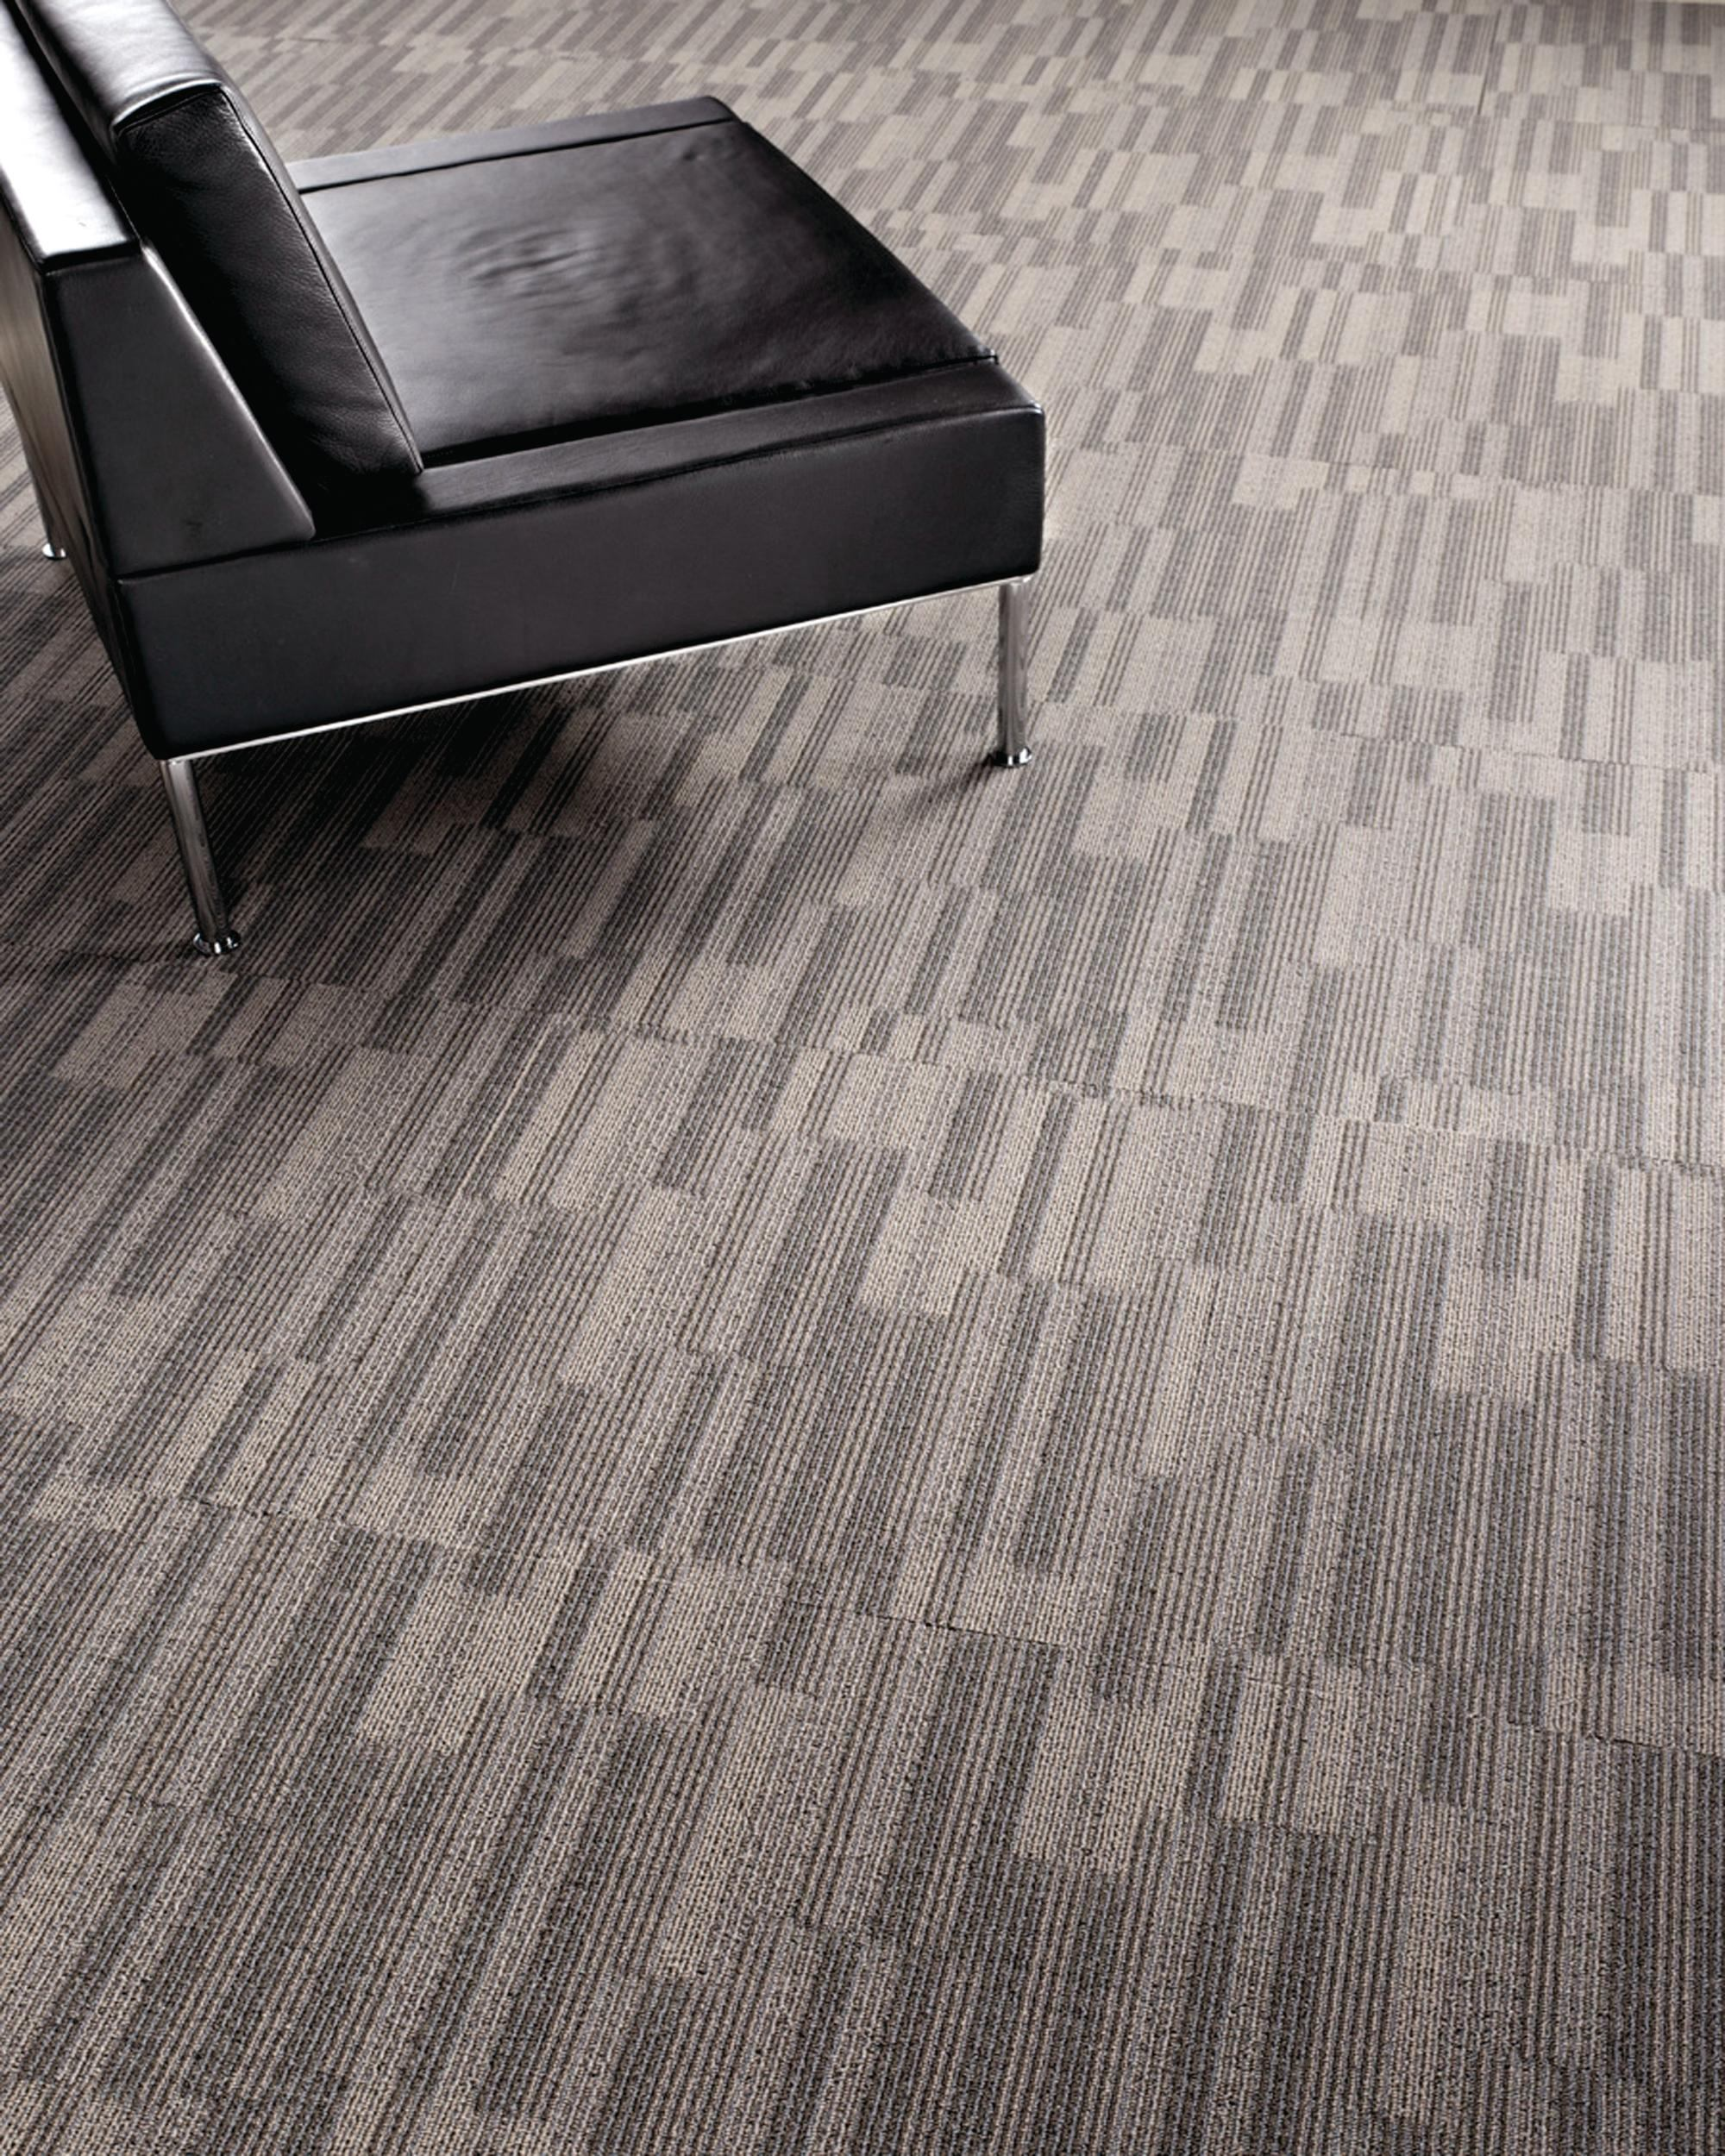 Bigelow Bending Earth Architect Magazine Flooring